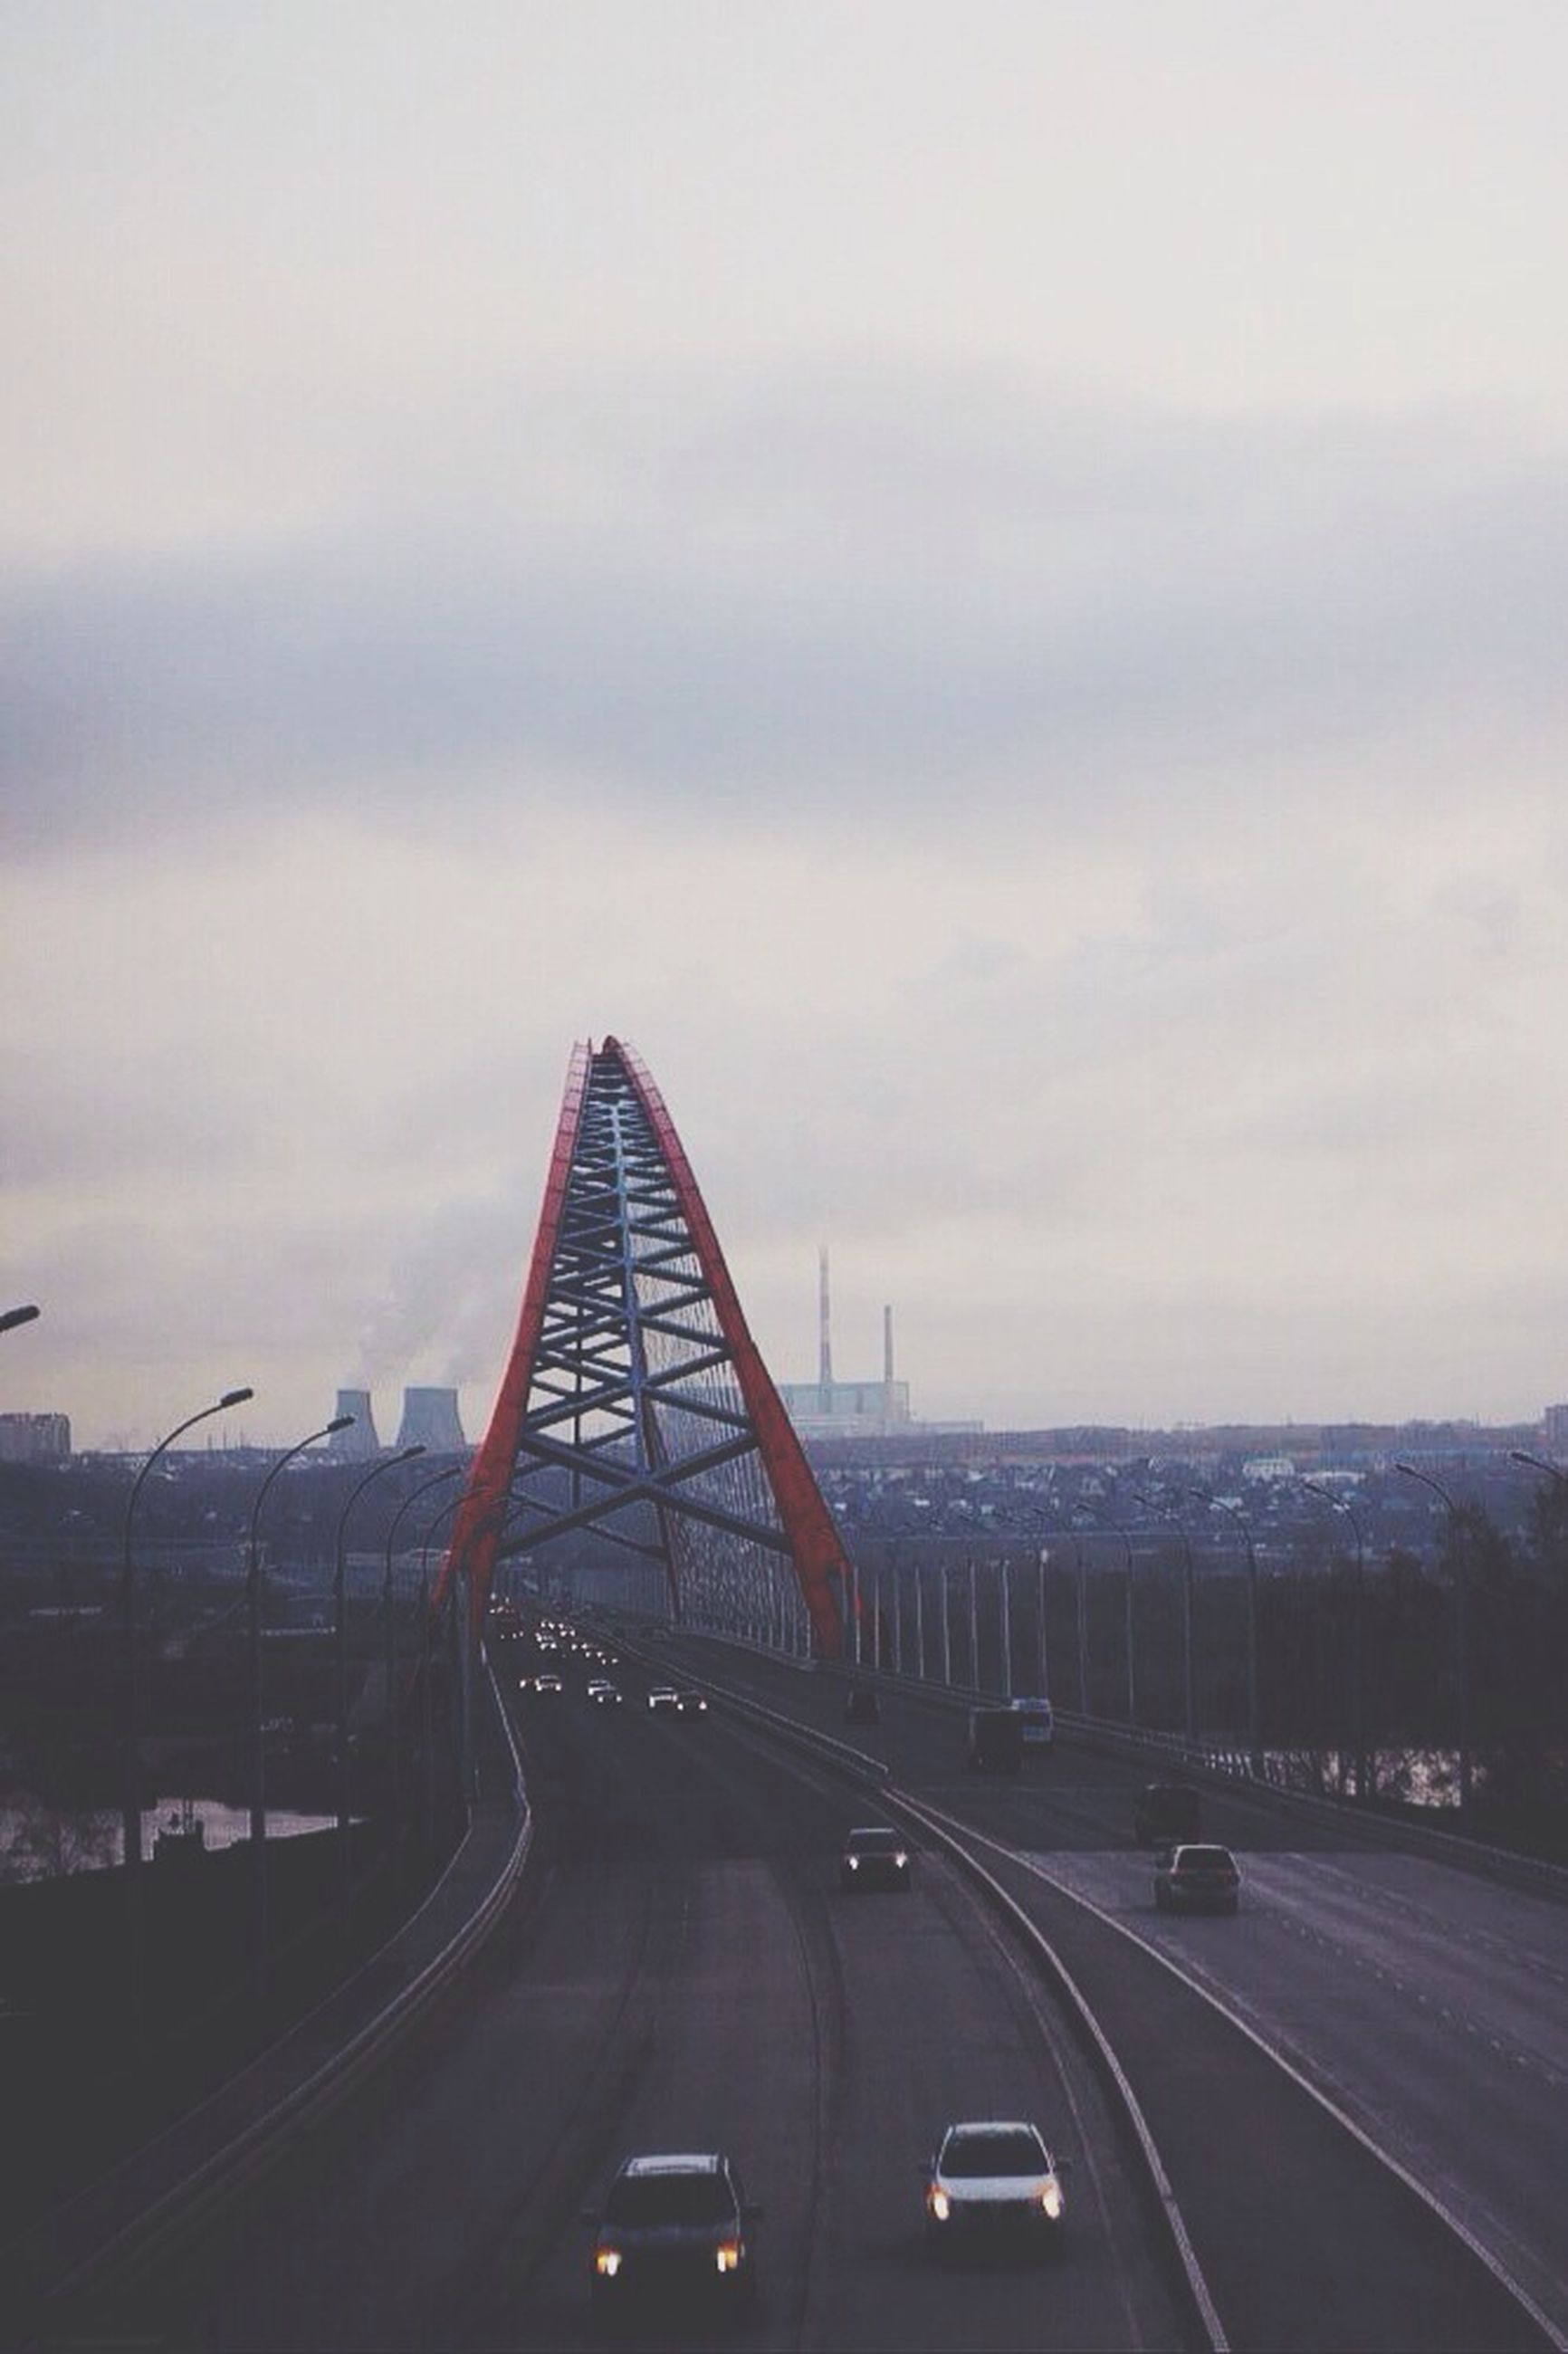 transportation, road, car, sky, land vehicle, built structure, architecture, road marking, the way forward, mode of transport, bridge - man made structure, cloud - sky, connection, street, city, highway, cloudy, on the move, diminishing perspective, vanishing point